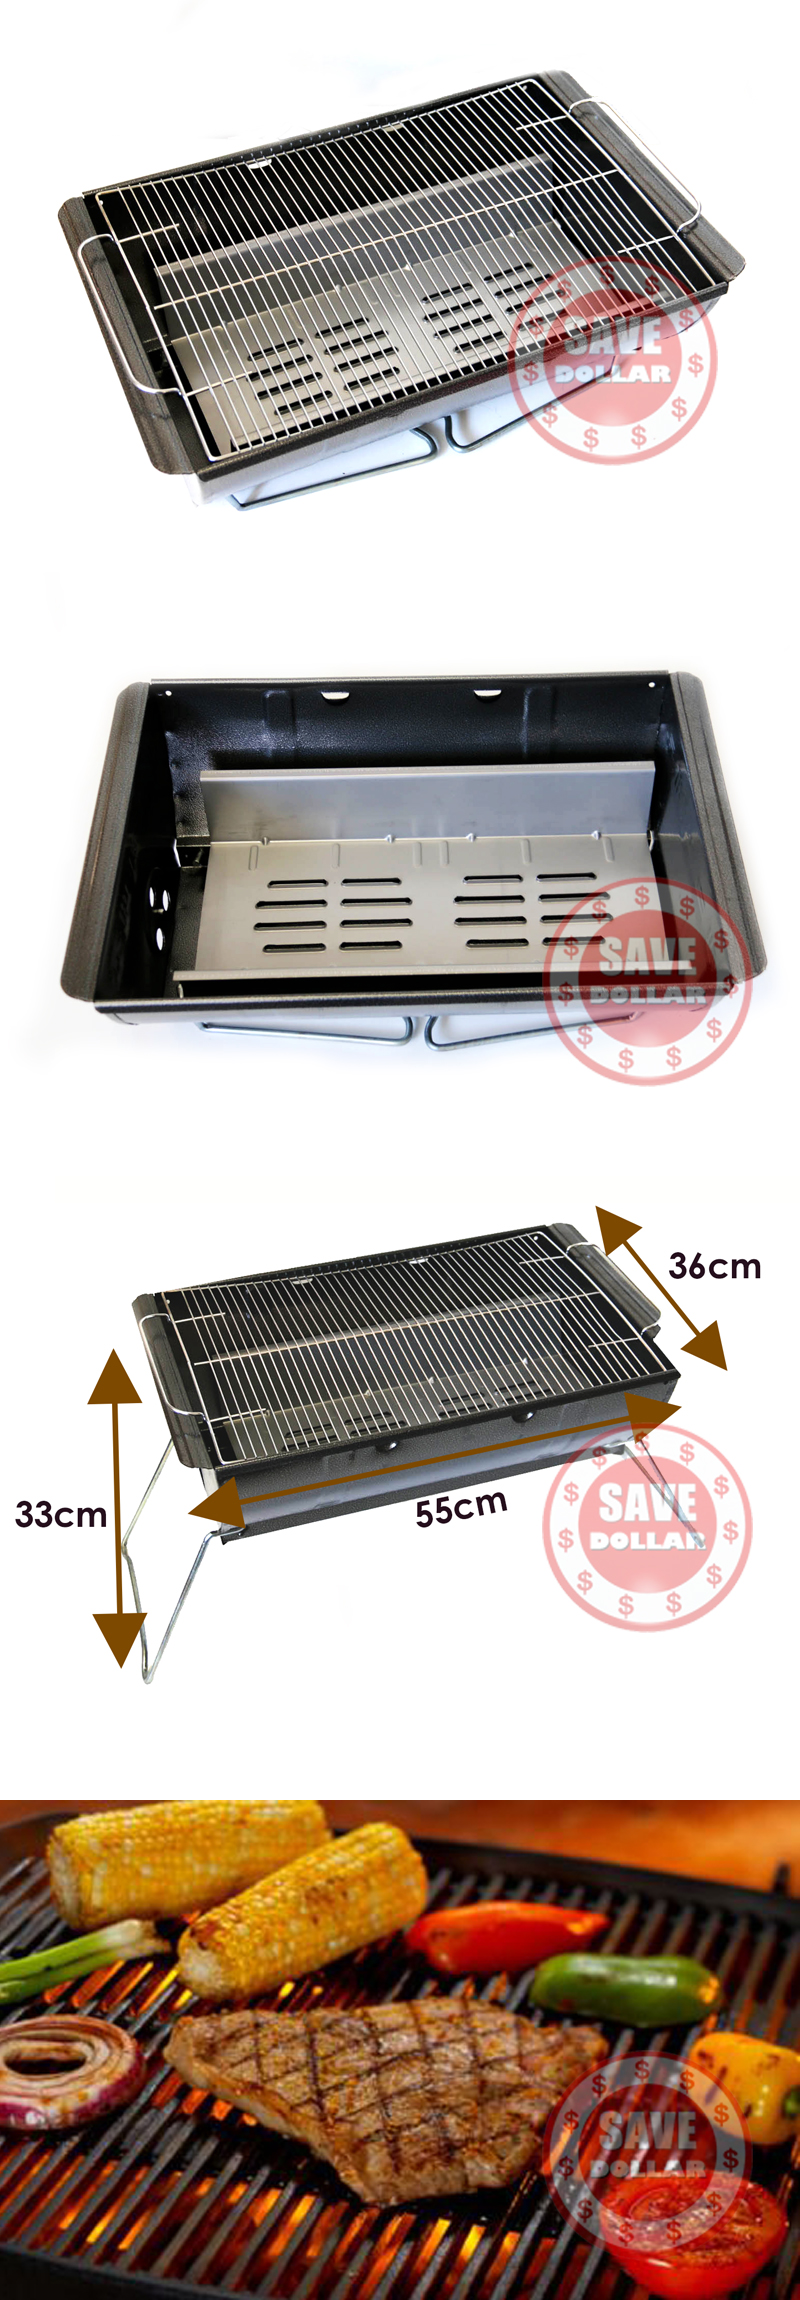 Charcoal Bbq Grill Portable Outdoor Barbeque Stainless Steel Barrel Camping Ebay